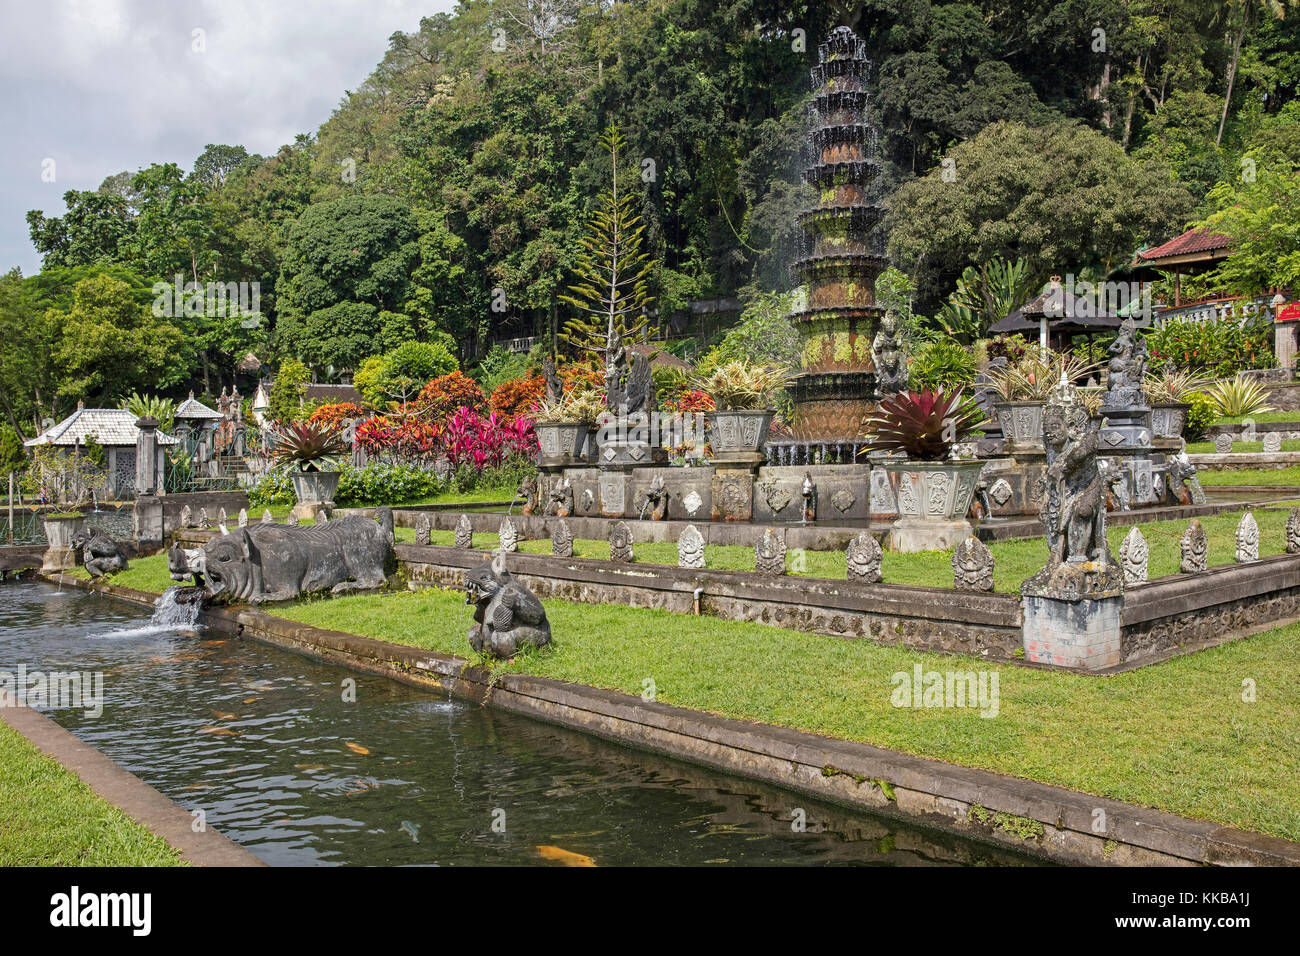 Tirta Gangga Royal Water Garden: Balinese Gardens Stock Photos & Balinese Gardens Stock